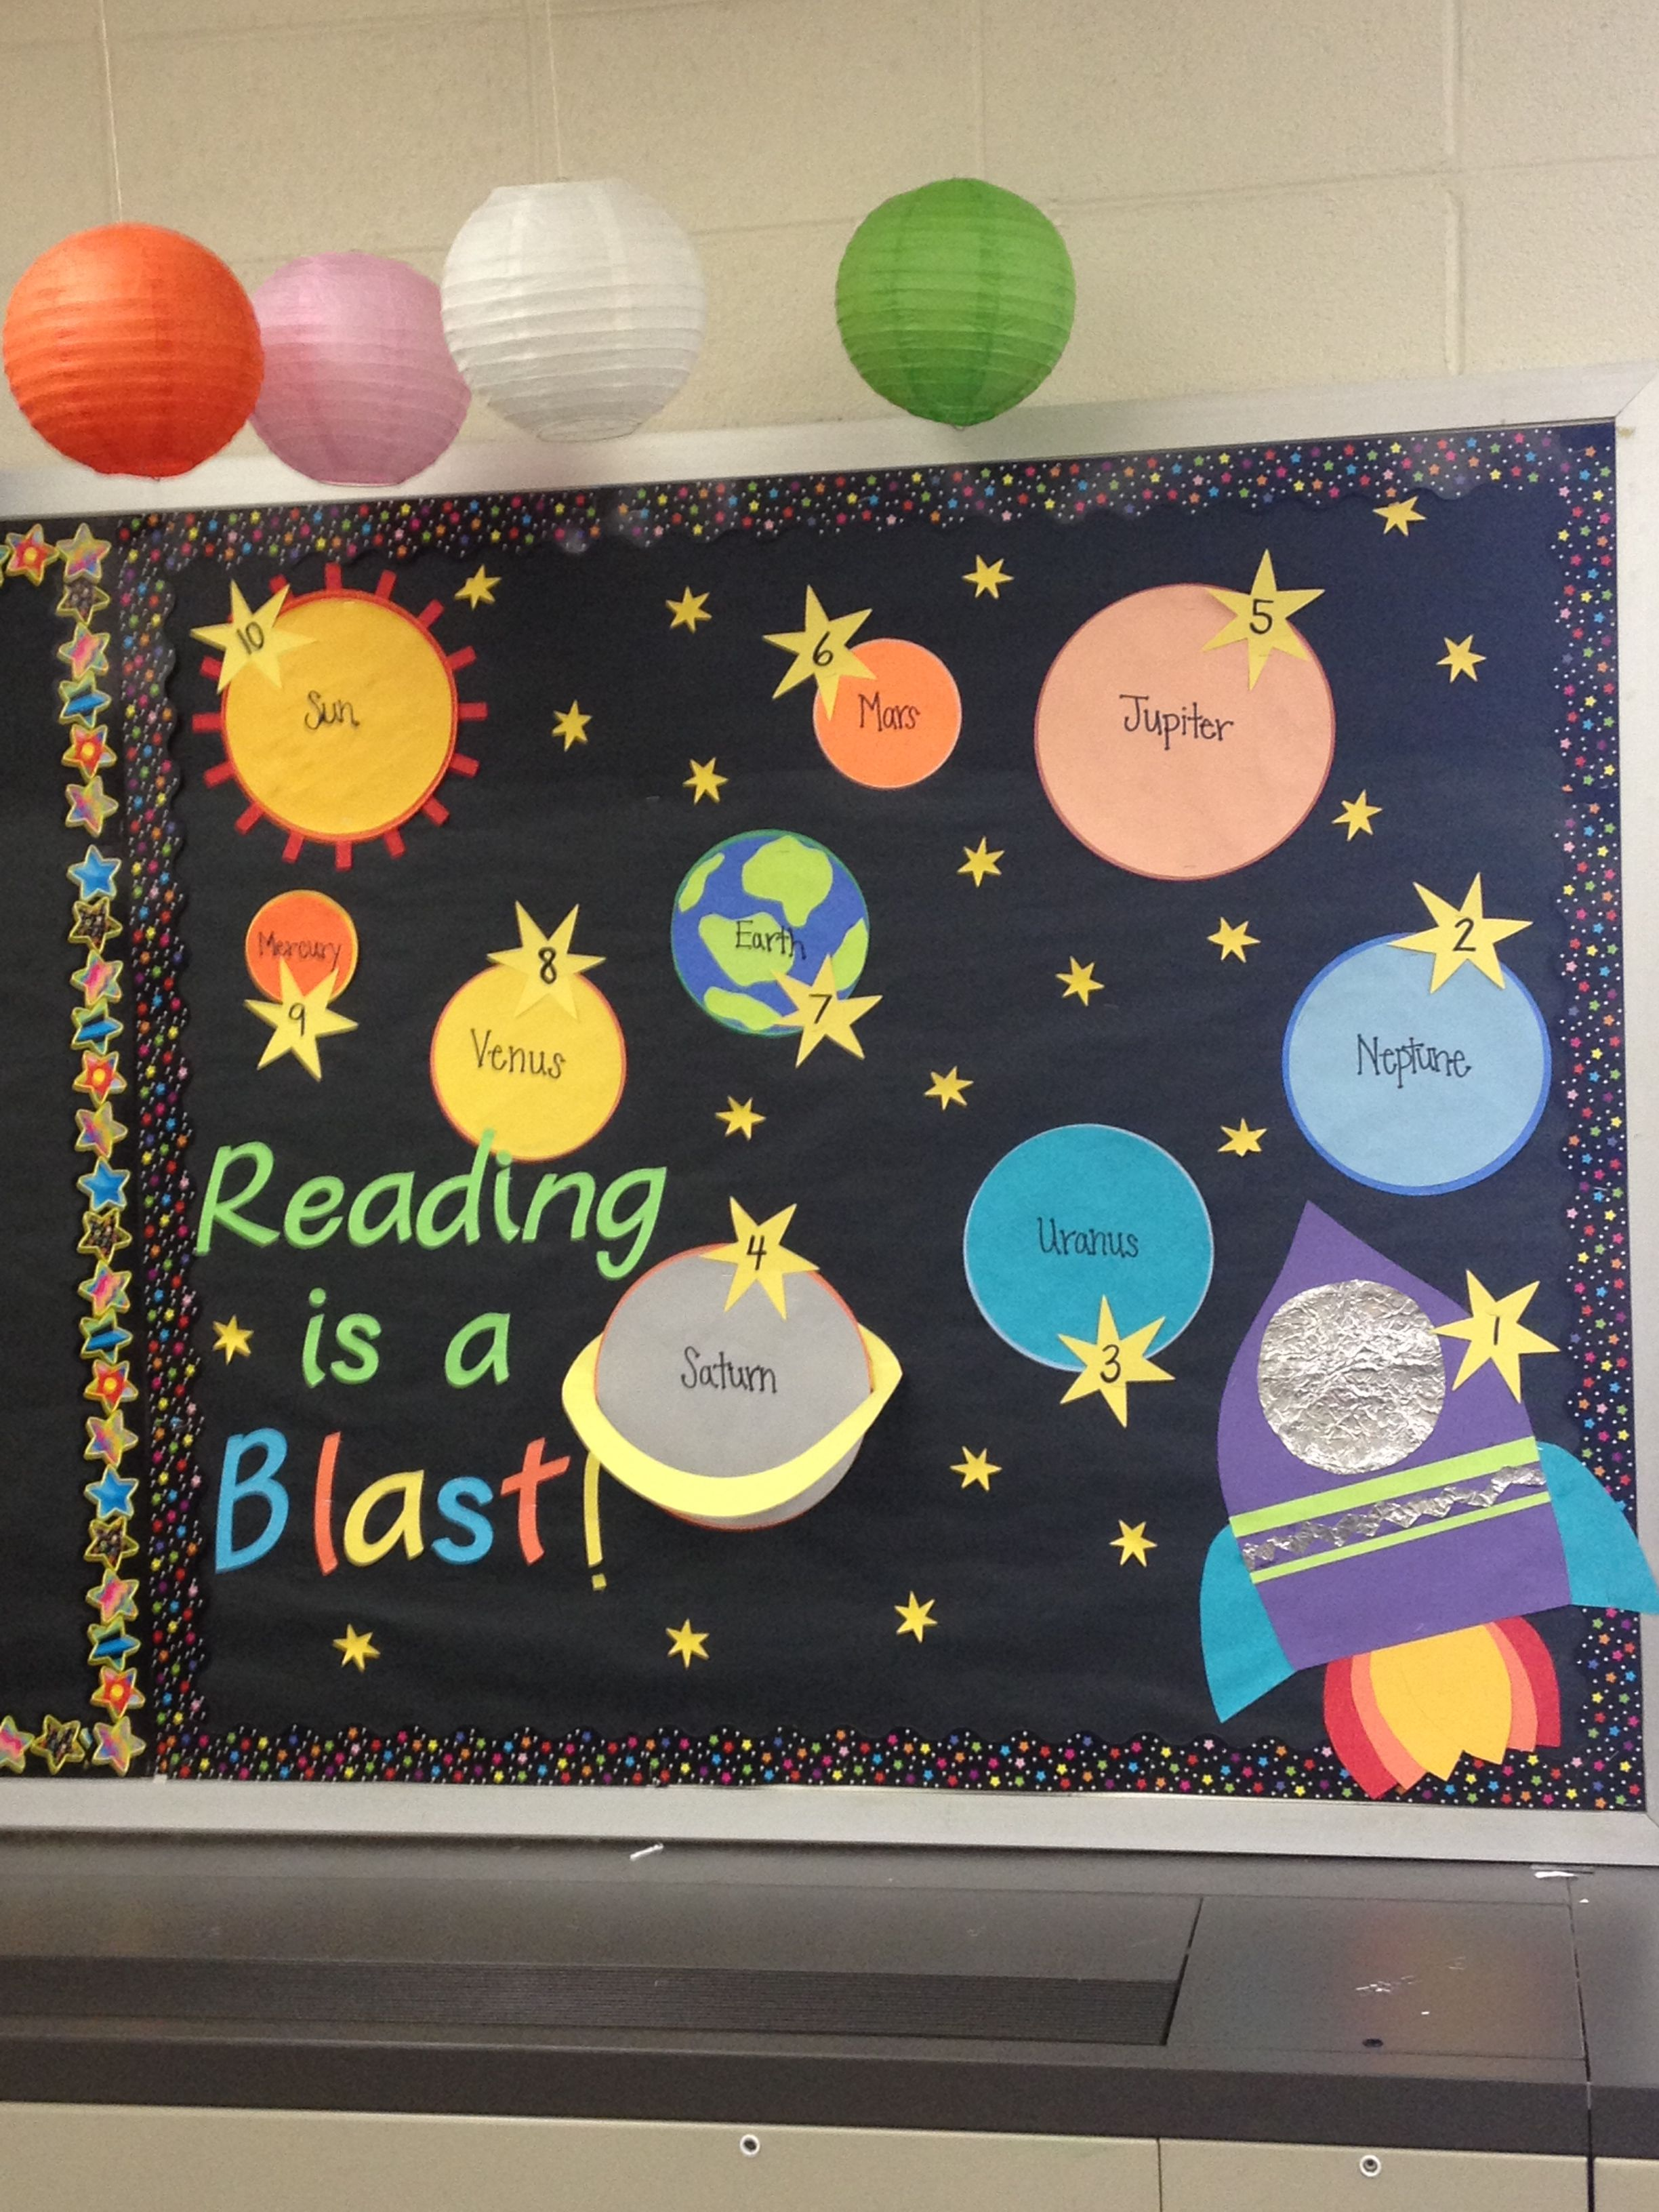 Space Themed Bulletin Board For Ar Goals  Each Student Gets An Astronaut To Move Around The